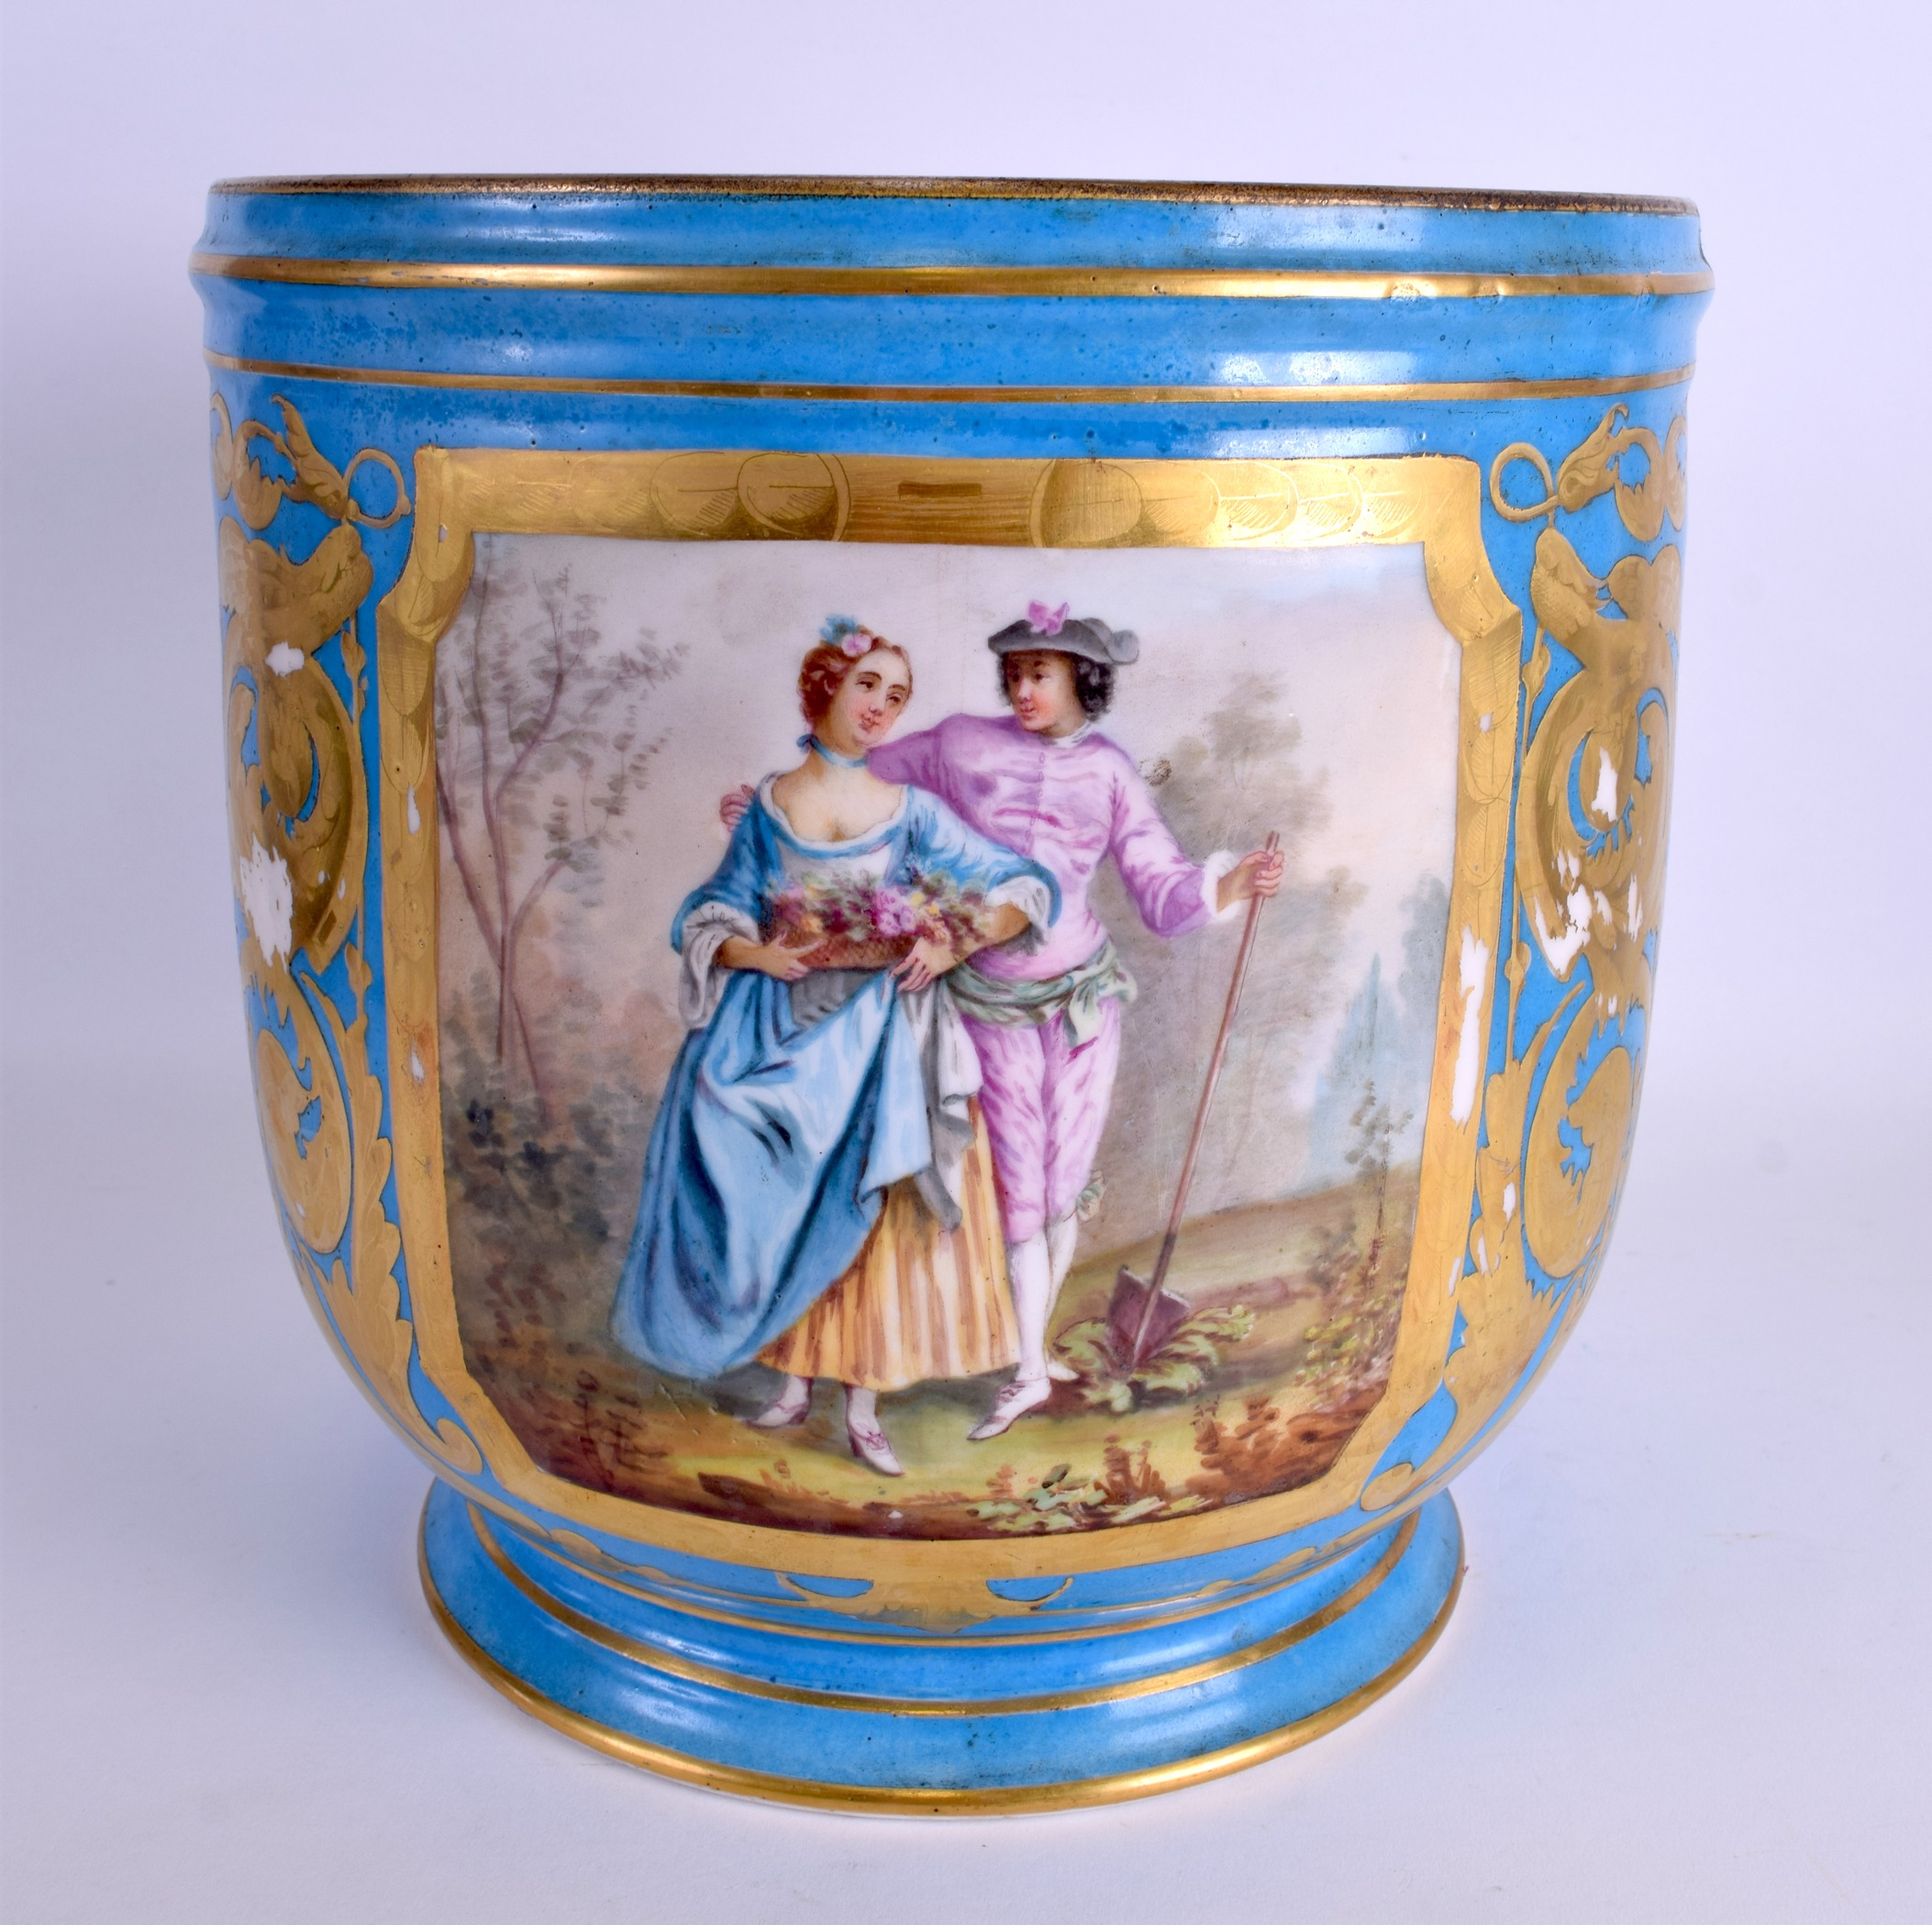 Lot 69 - A VERY LARGE 19TH CENTURY FRENCH SEVRES PORCELAIN JARDINIERE painted with figures within a